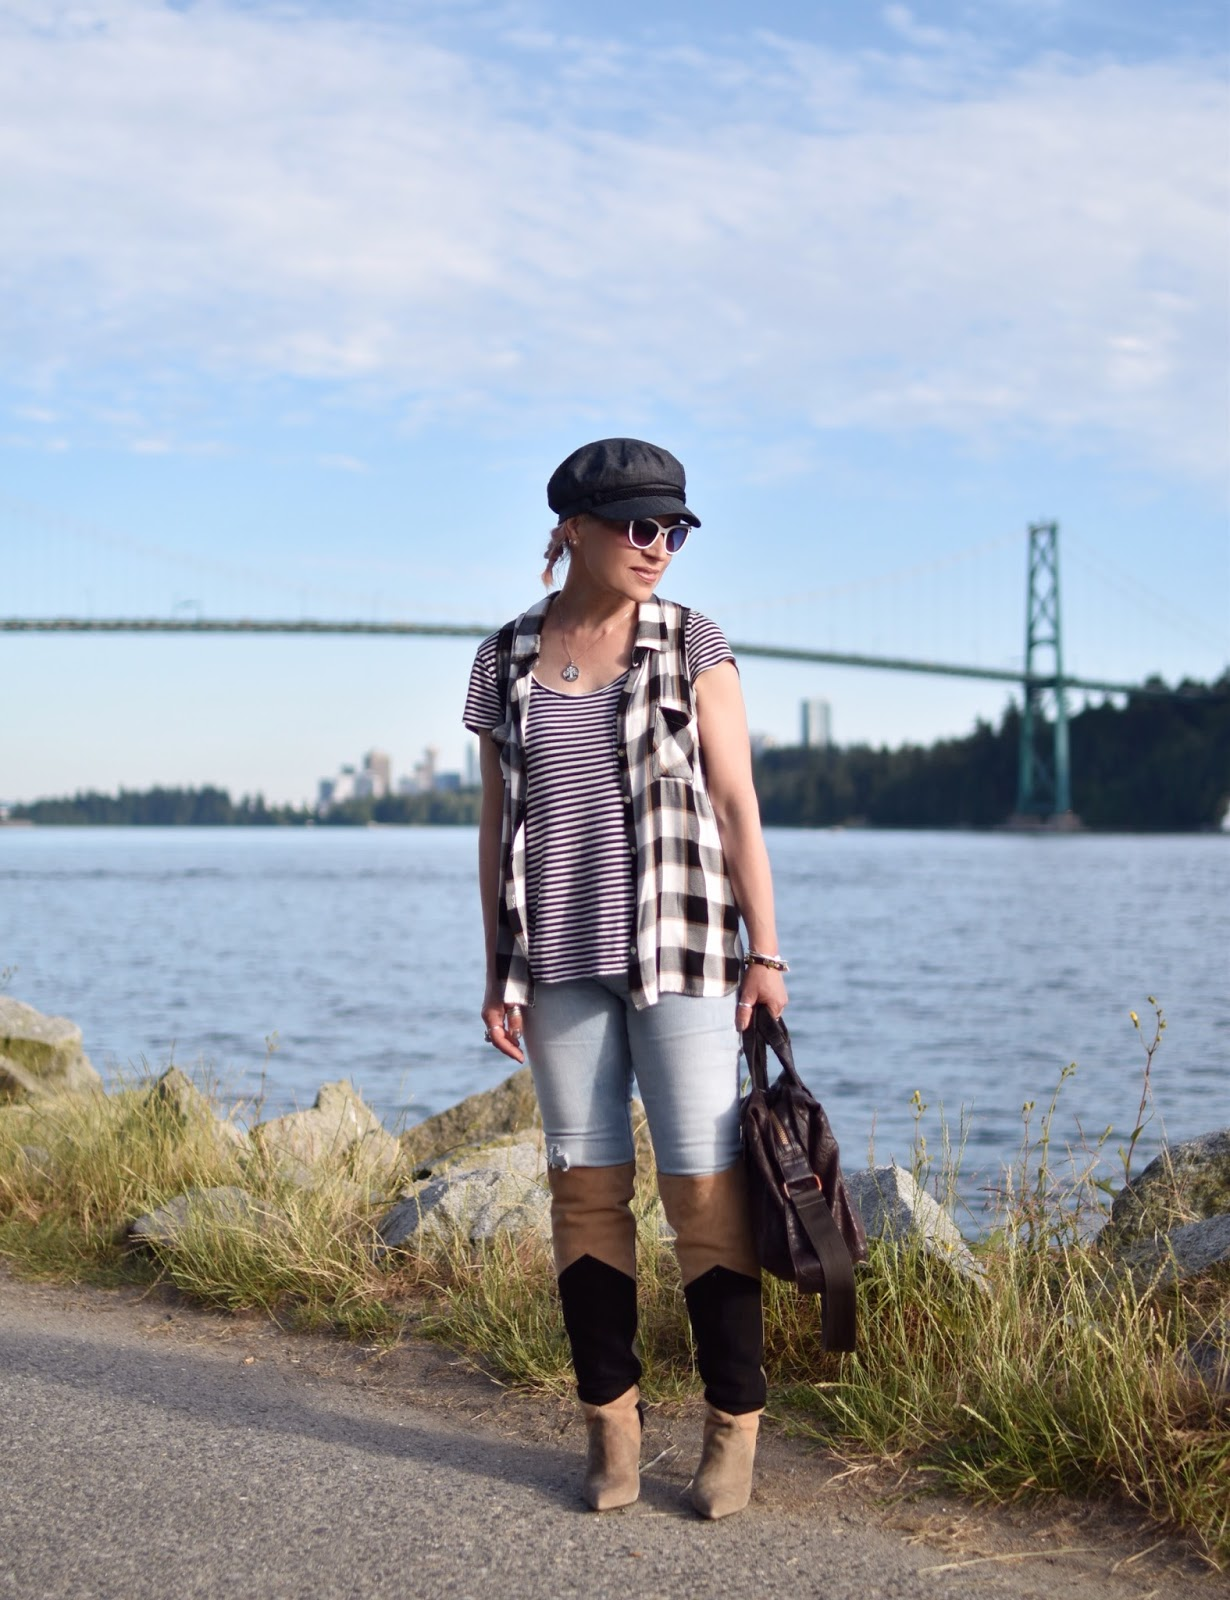 72986f63b92f2 Monika Faulkner personal style inspiration - layered striped and plaid tops  with skinny jeans and OTK ...